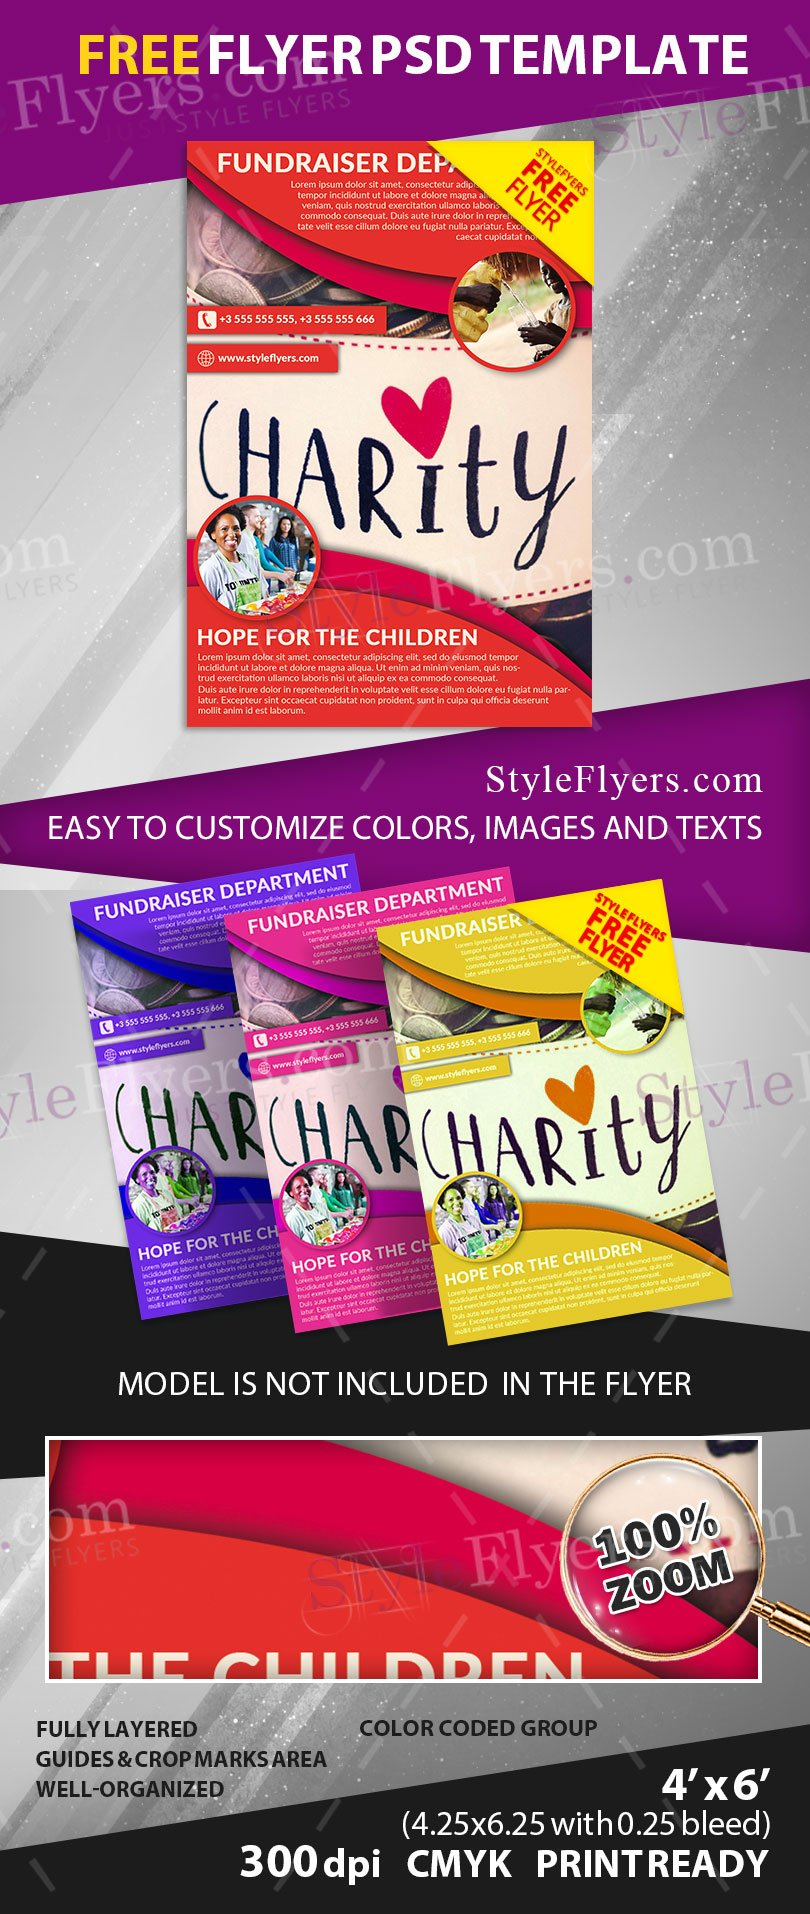 Fundraiser free psd flyer template free download 11693 for Free psd brochure template